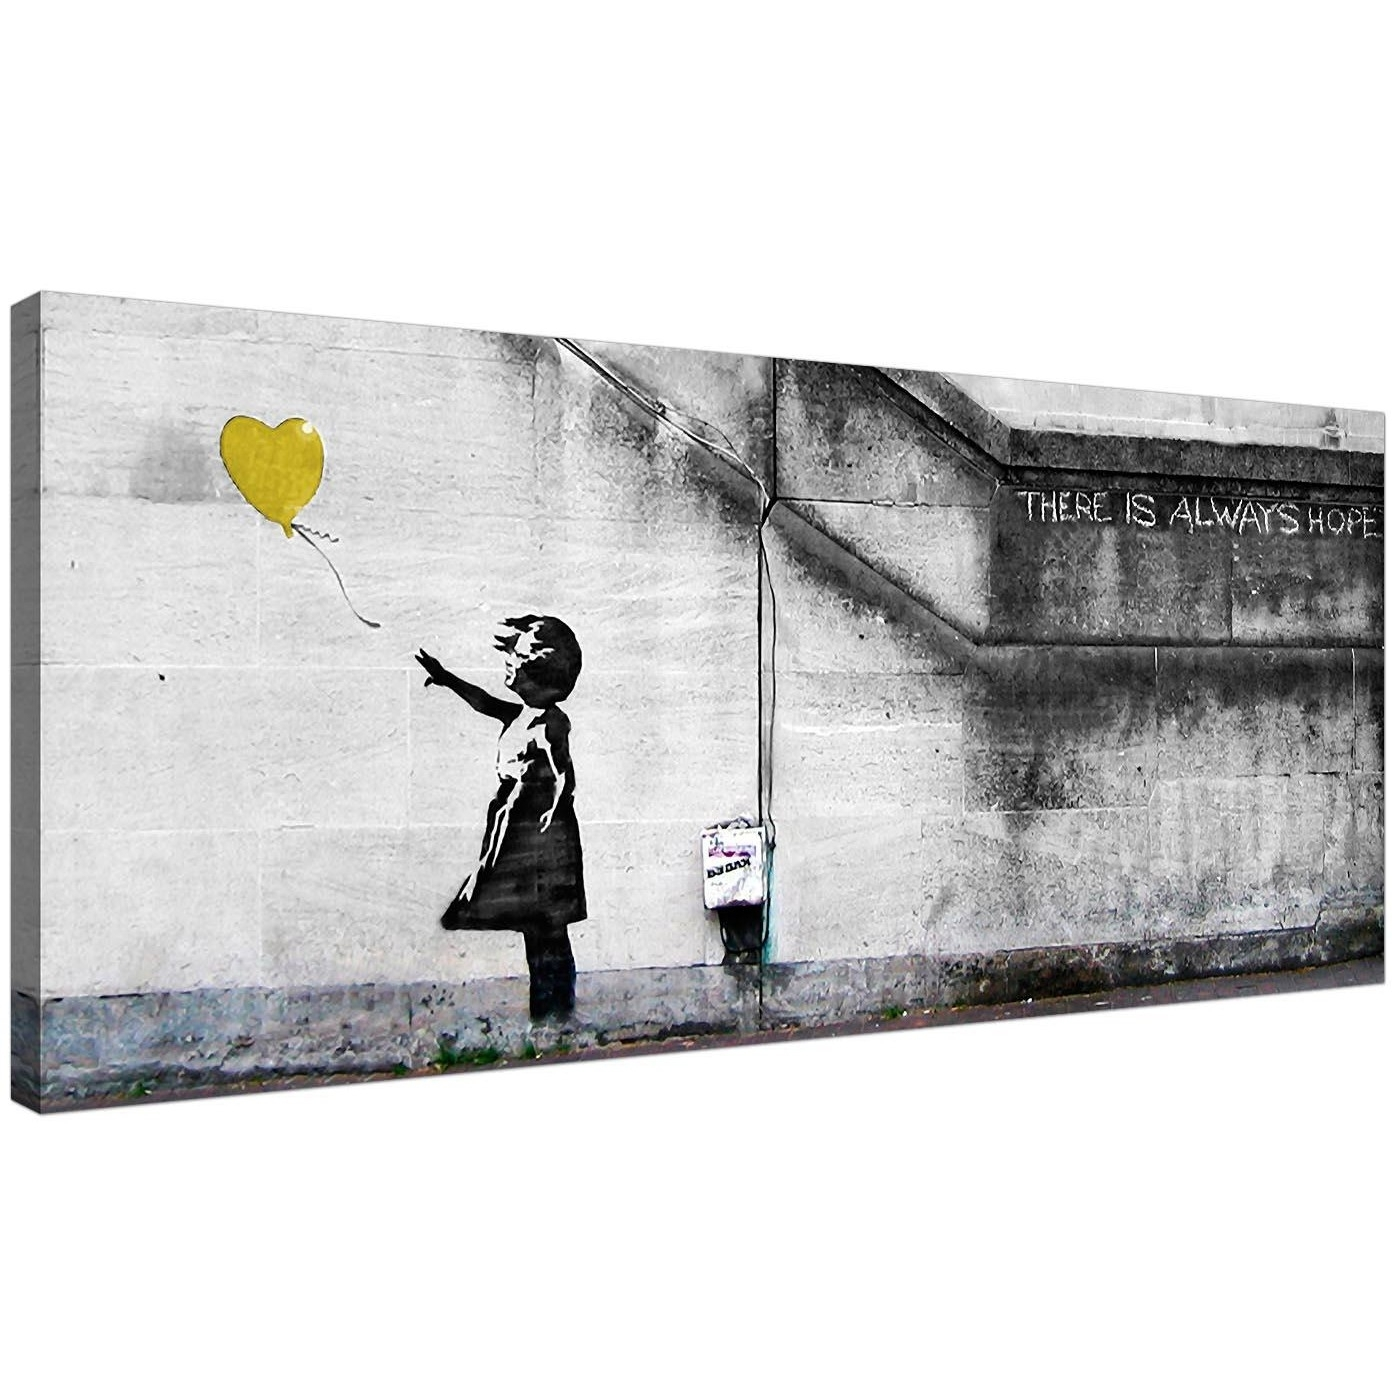 Cheap Yellow Canvas Art Of Banksy Balloon Girl Within 2018 Yellow Wall Art (View 8 of 20)